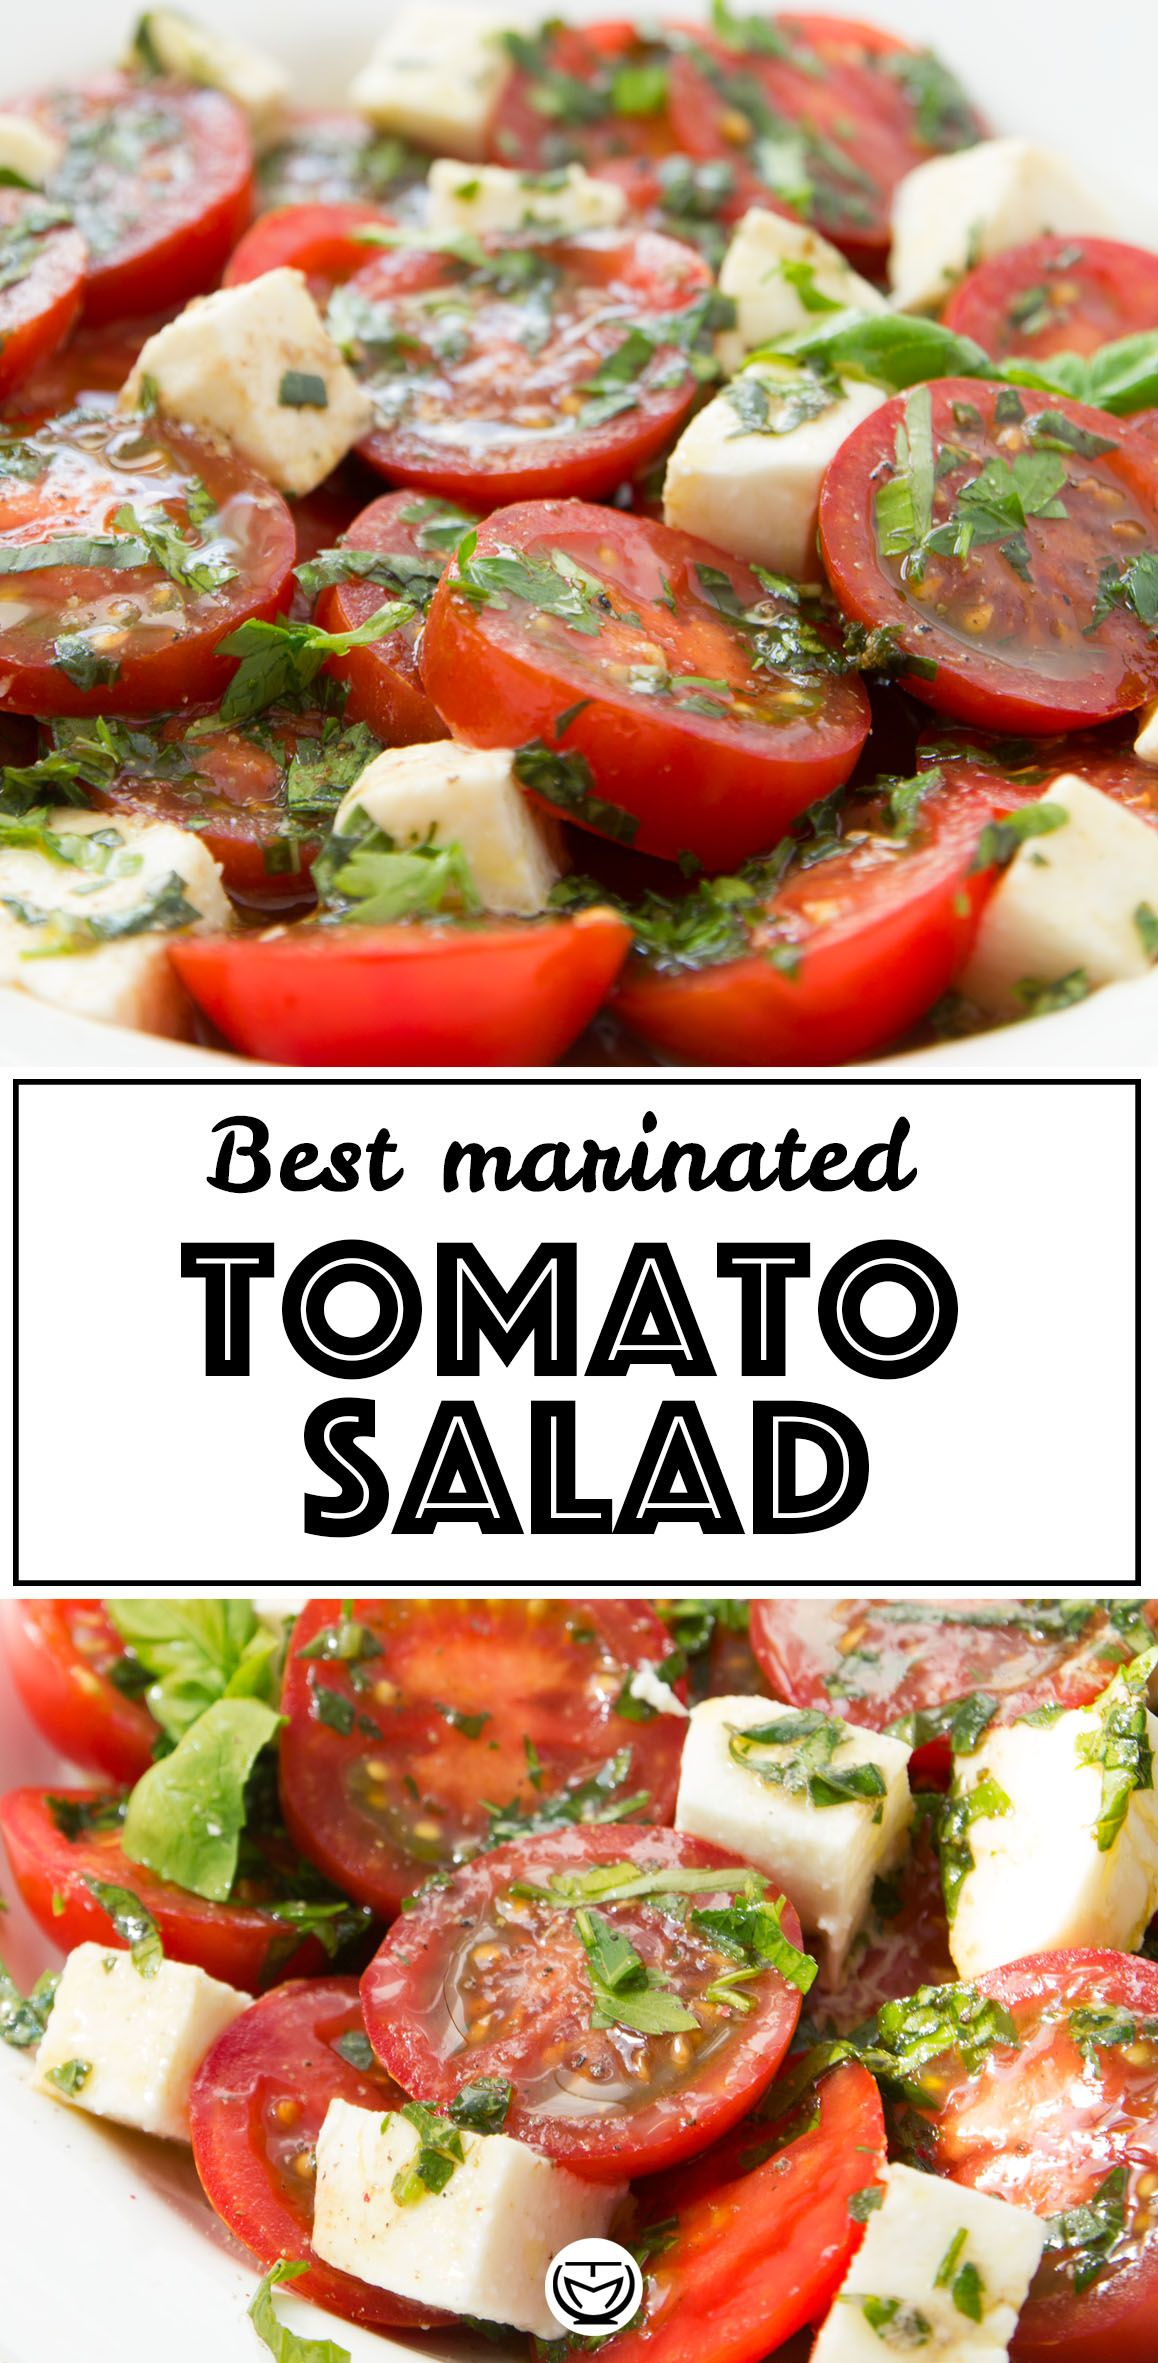 The Best Marinated Tomato Salad Recipe In 2020 Tomato Side Dishes Marinated Tomatoes Tomato Salad Recipes